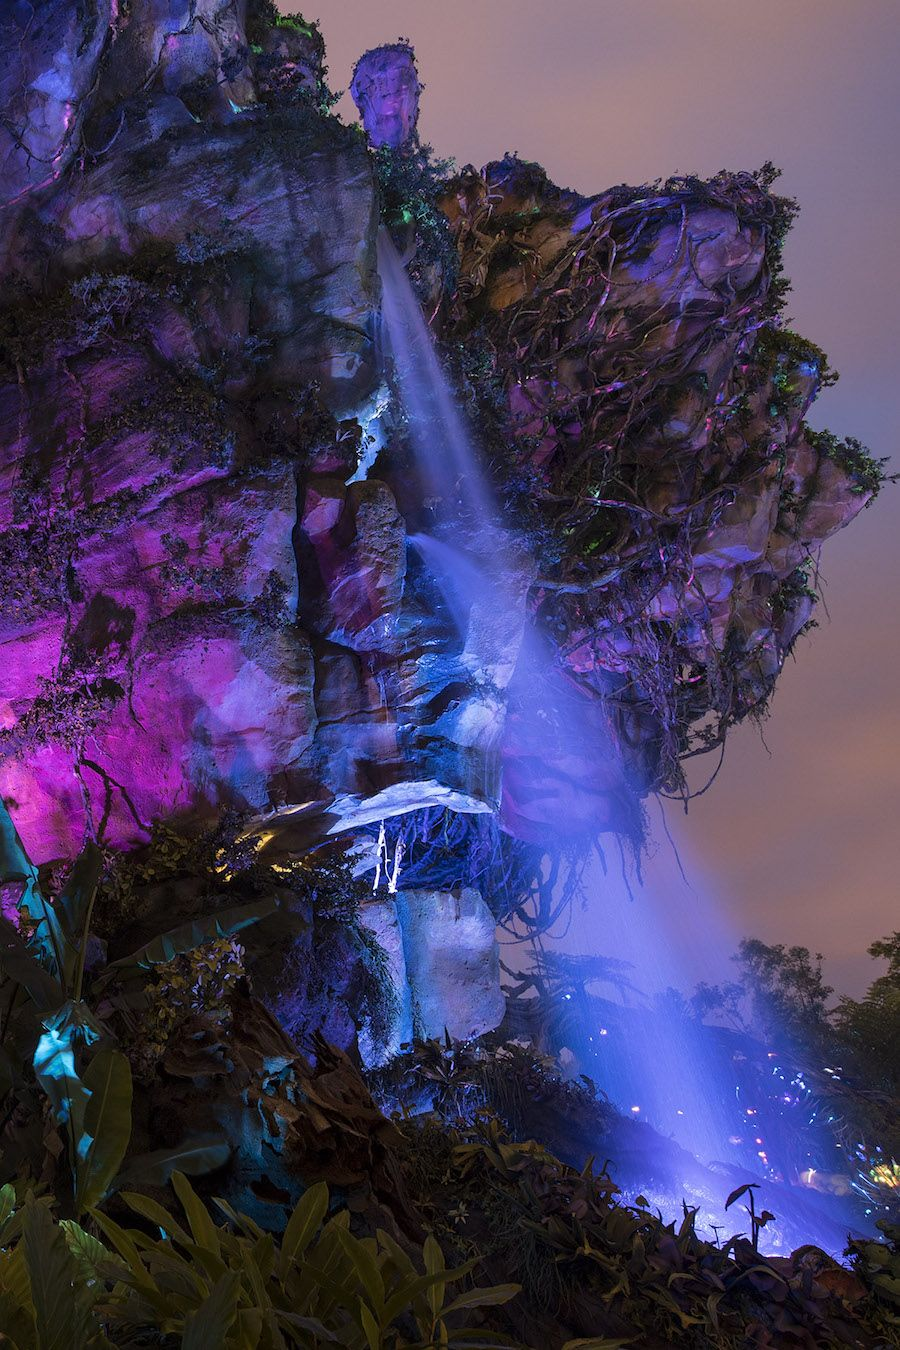 Parks After Dark Image That Was Snapped At Pandora